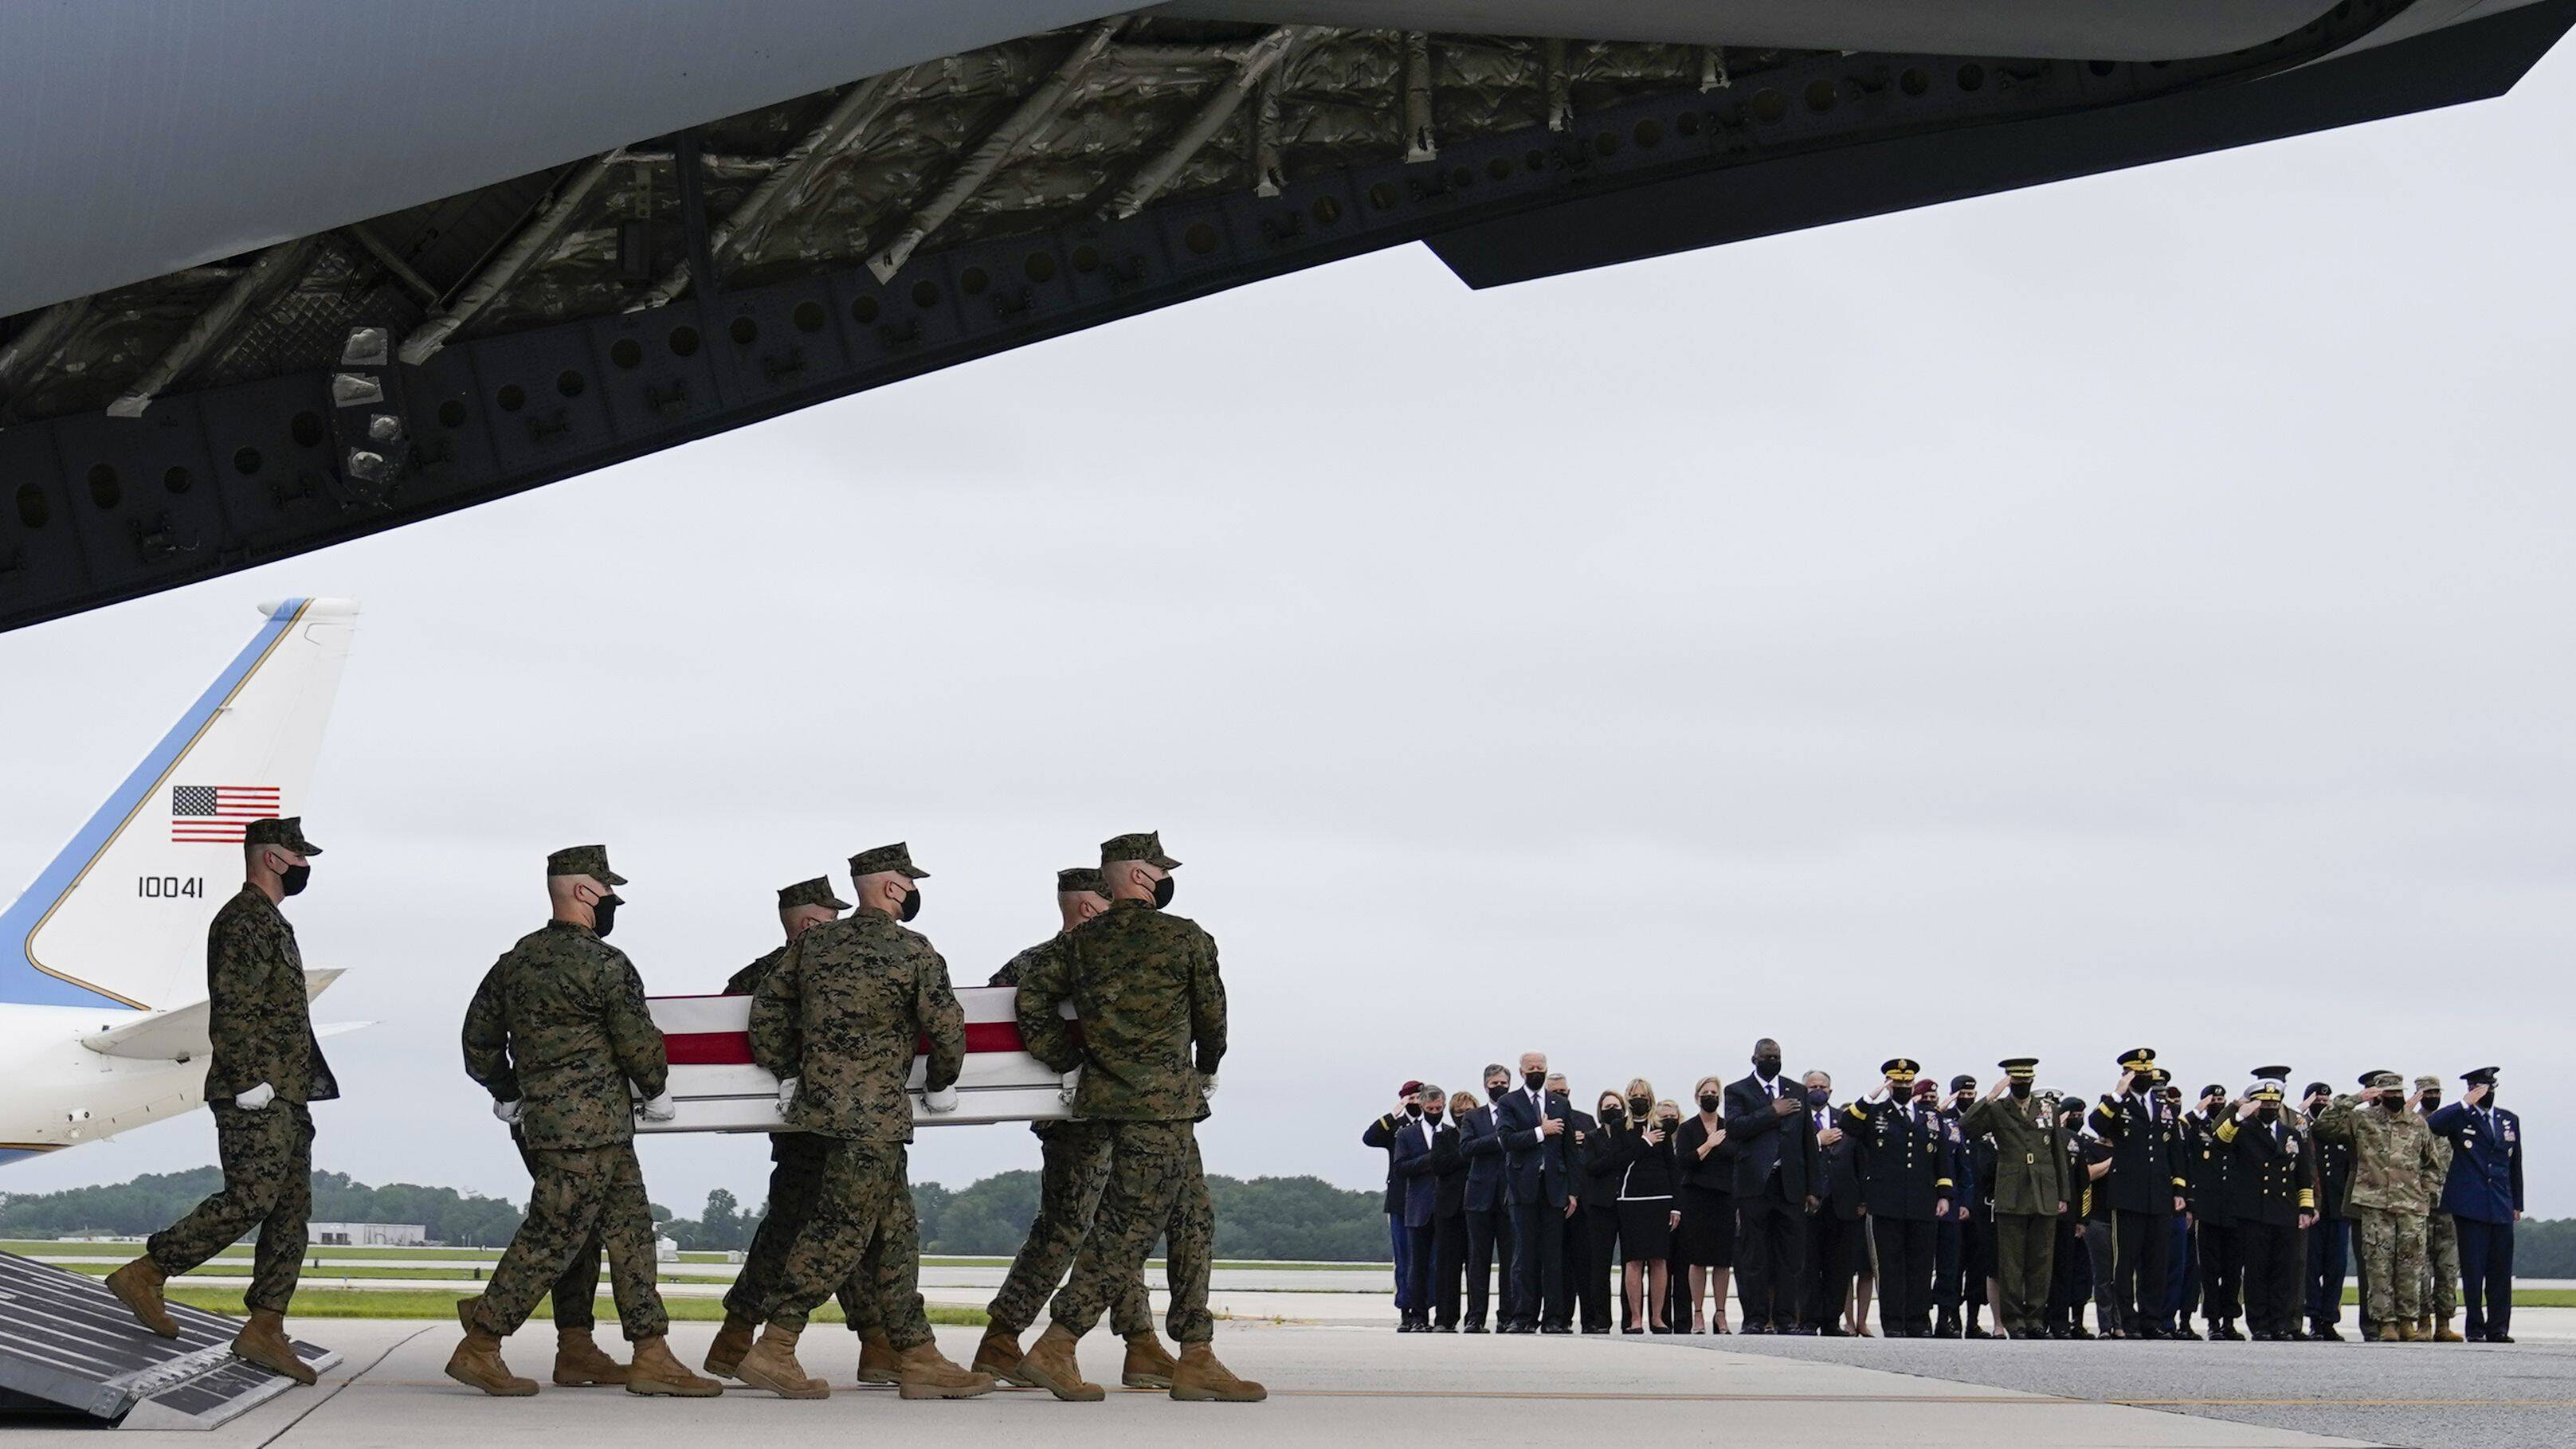 President Biden, first lady Jill Biden and others watch as a Marine Corps team carries the remains of Marine Corps Lance Cpl. Jared M. Schmitz, 20, during a casualty return on Aug. 29 at Dover Air Force Base in Delaware. (Carolyn Kaster/AP)